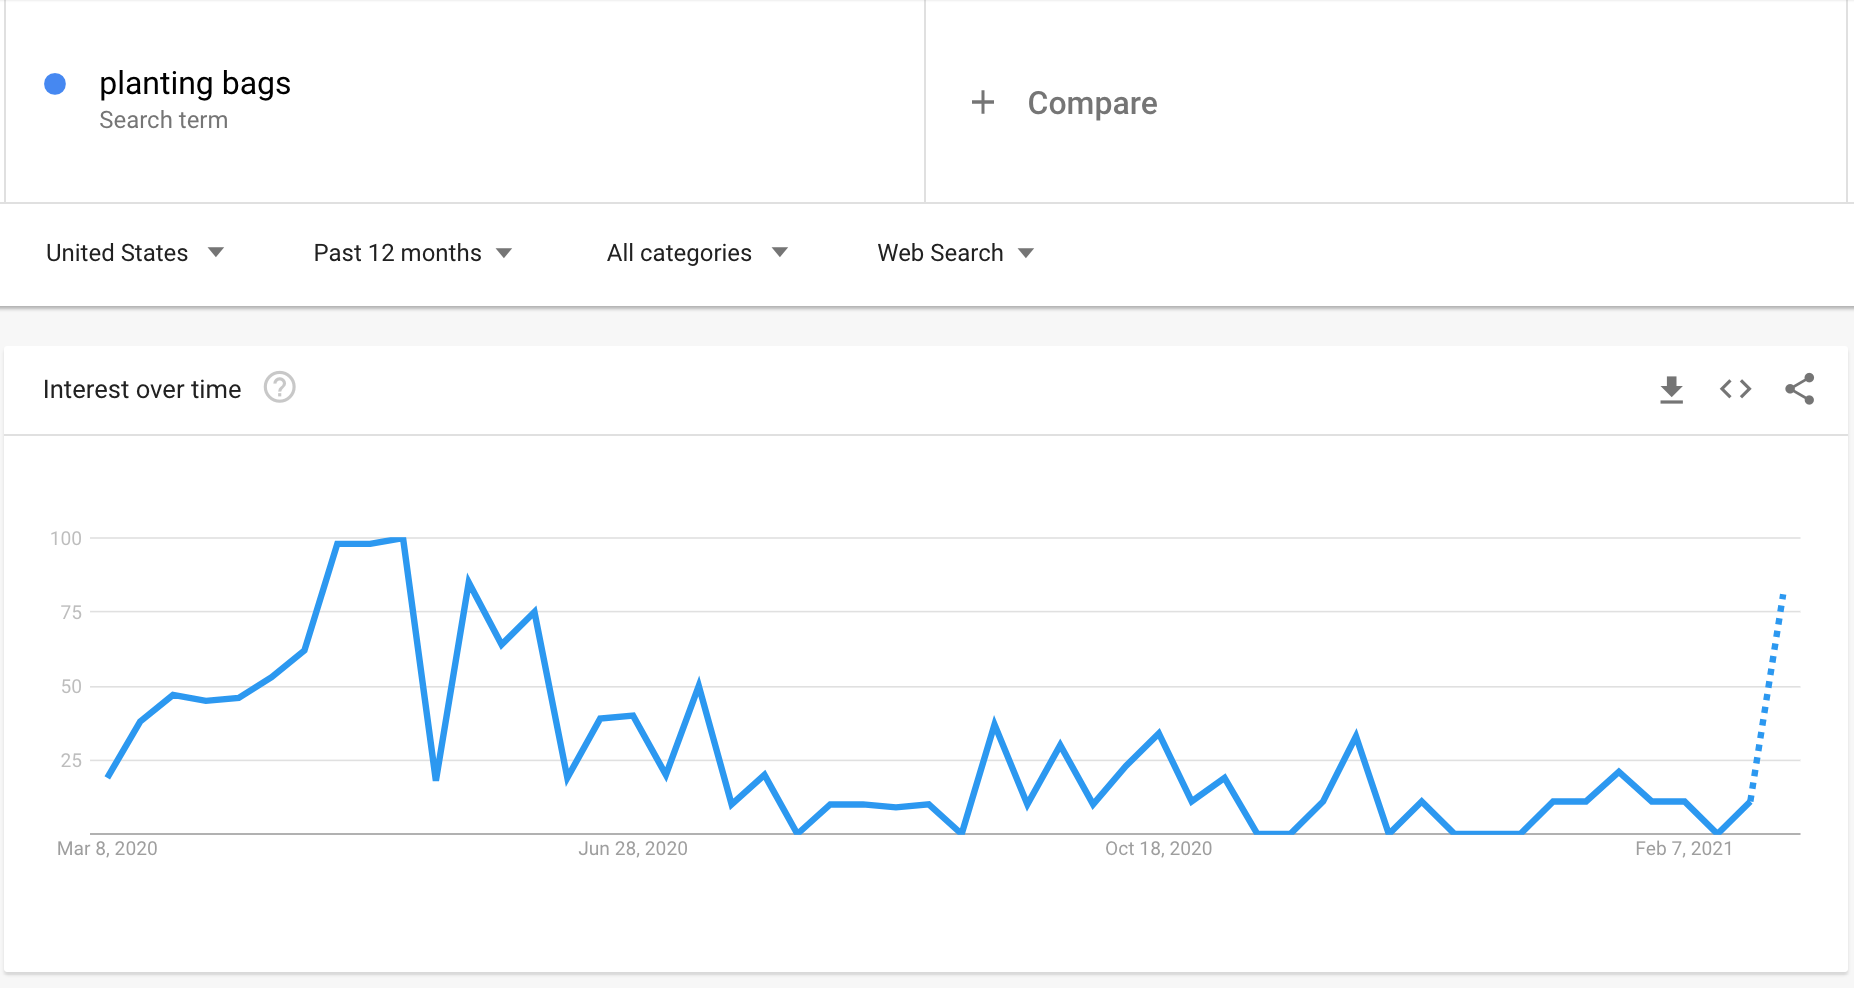 Google Trends graph showing the interest in planting bags